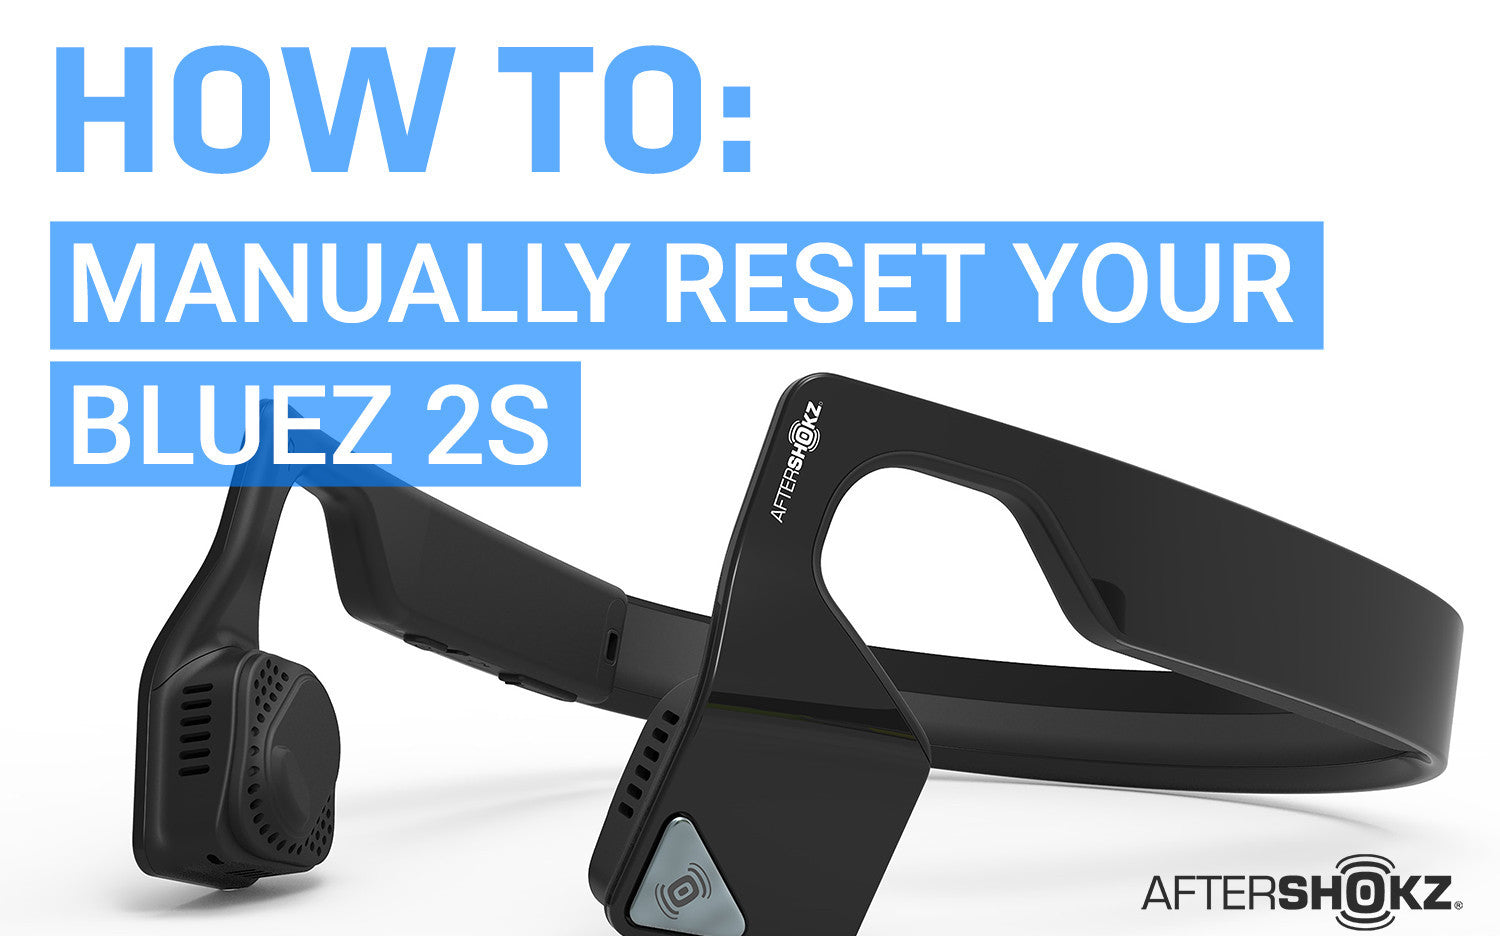 How to: Manually Reset Your Bluez 2S